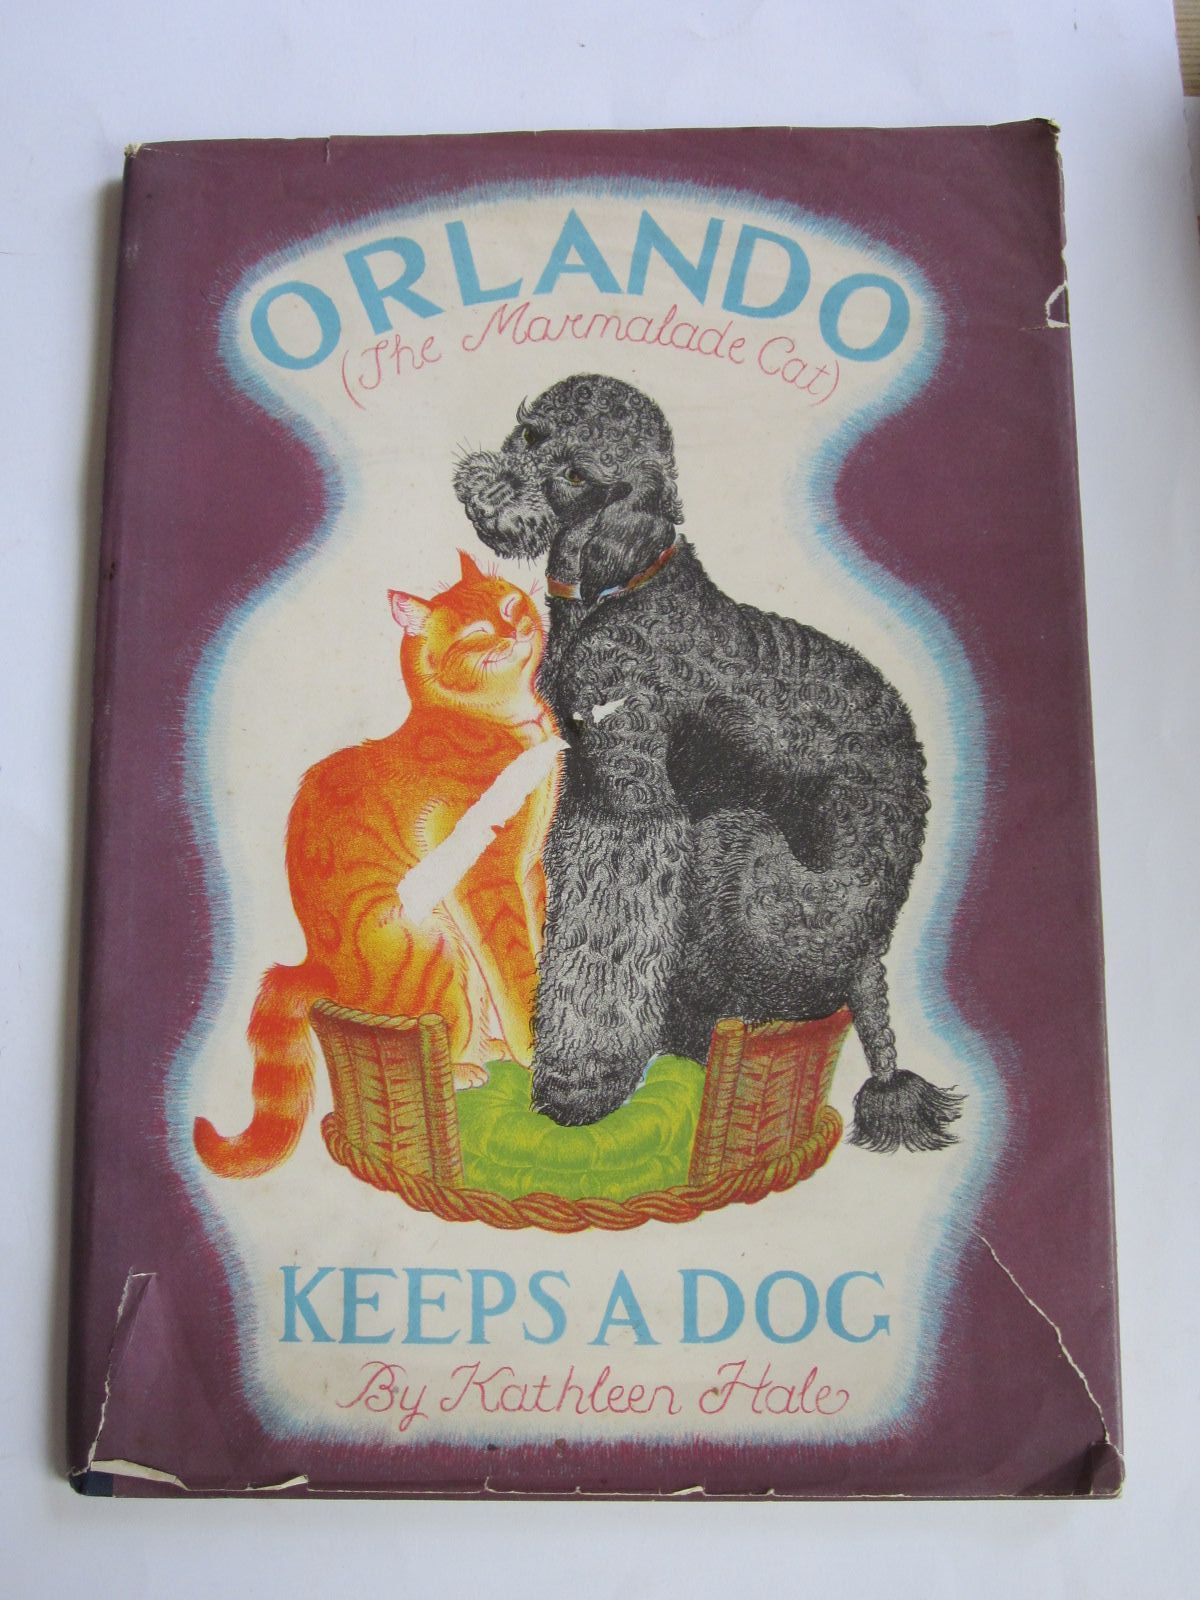 Photo of ORLANDO (THE MARMALADE CAT) KEEPS A DOG written by Hale, Kathleen illustrated by Hale, Kathleen published by Country Life (STOCK CODE: 1207374)  for sale by Stella & Rose's Books